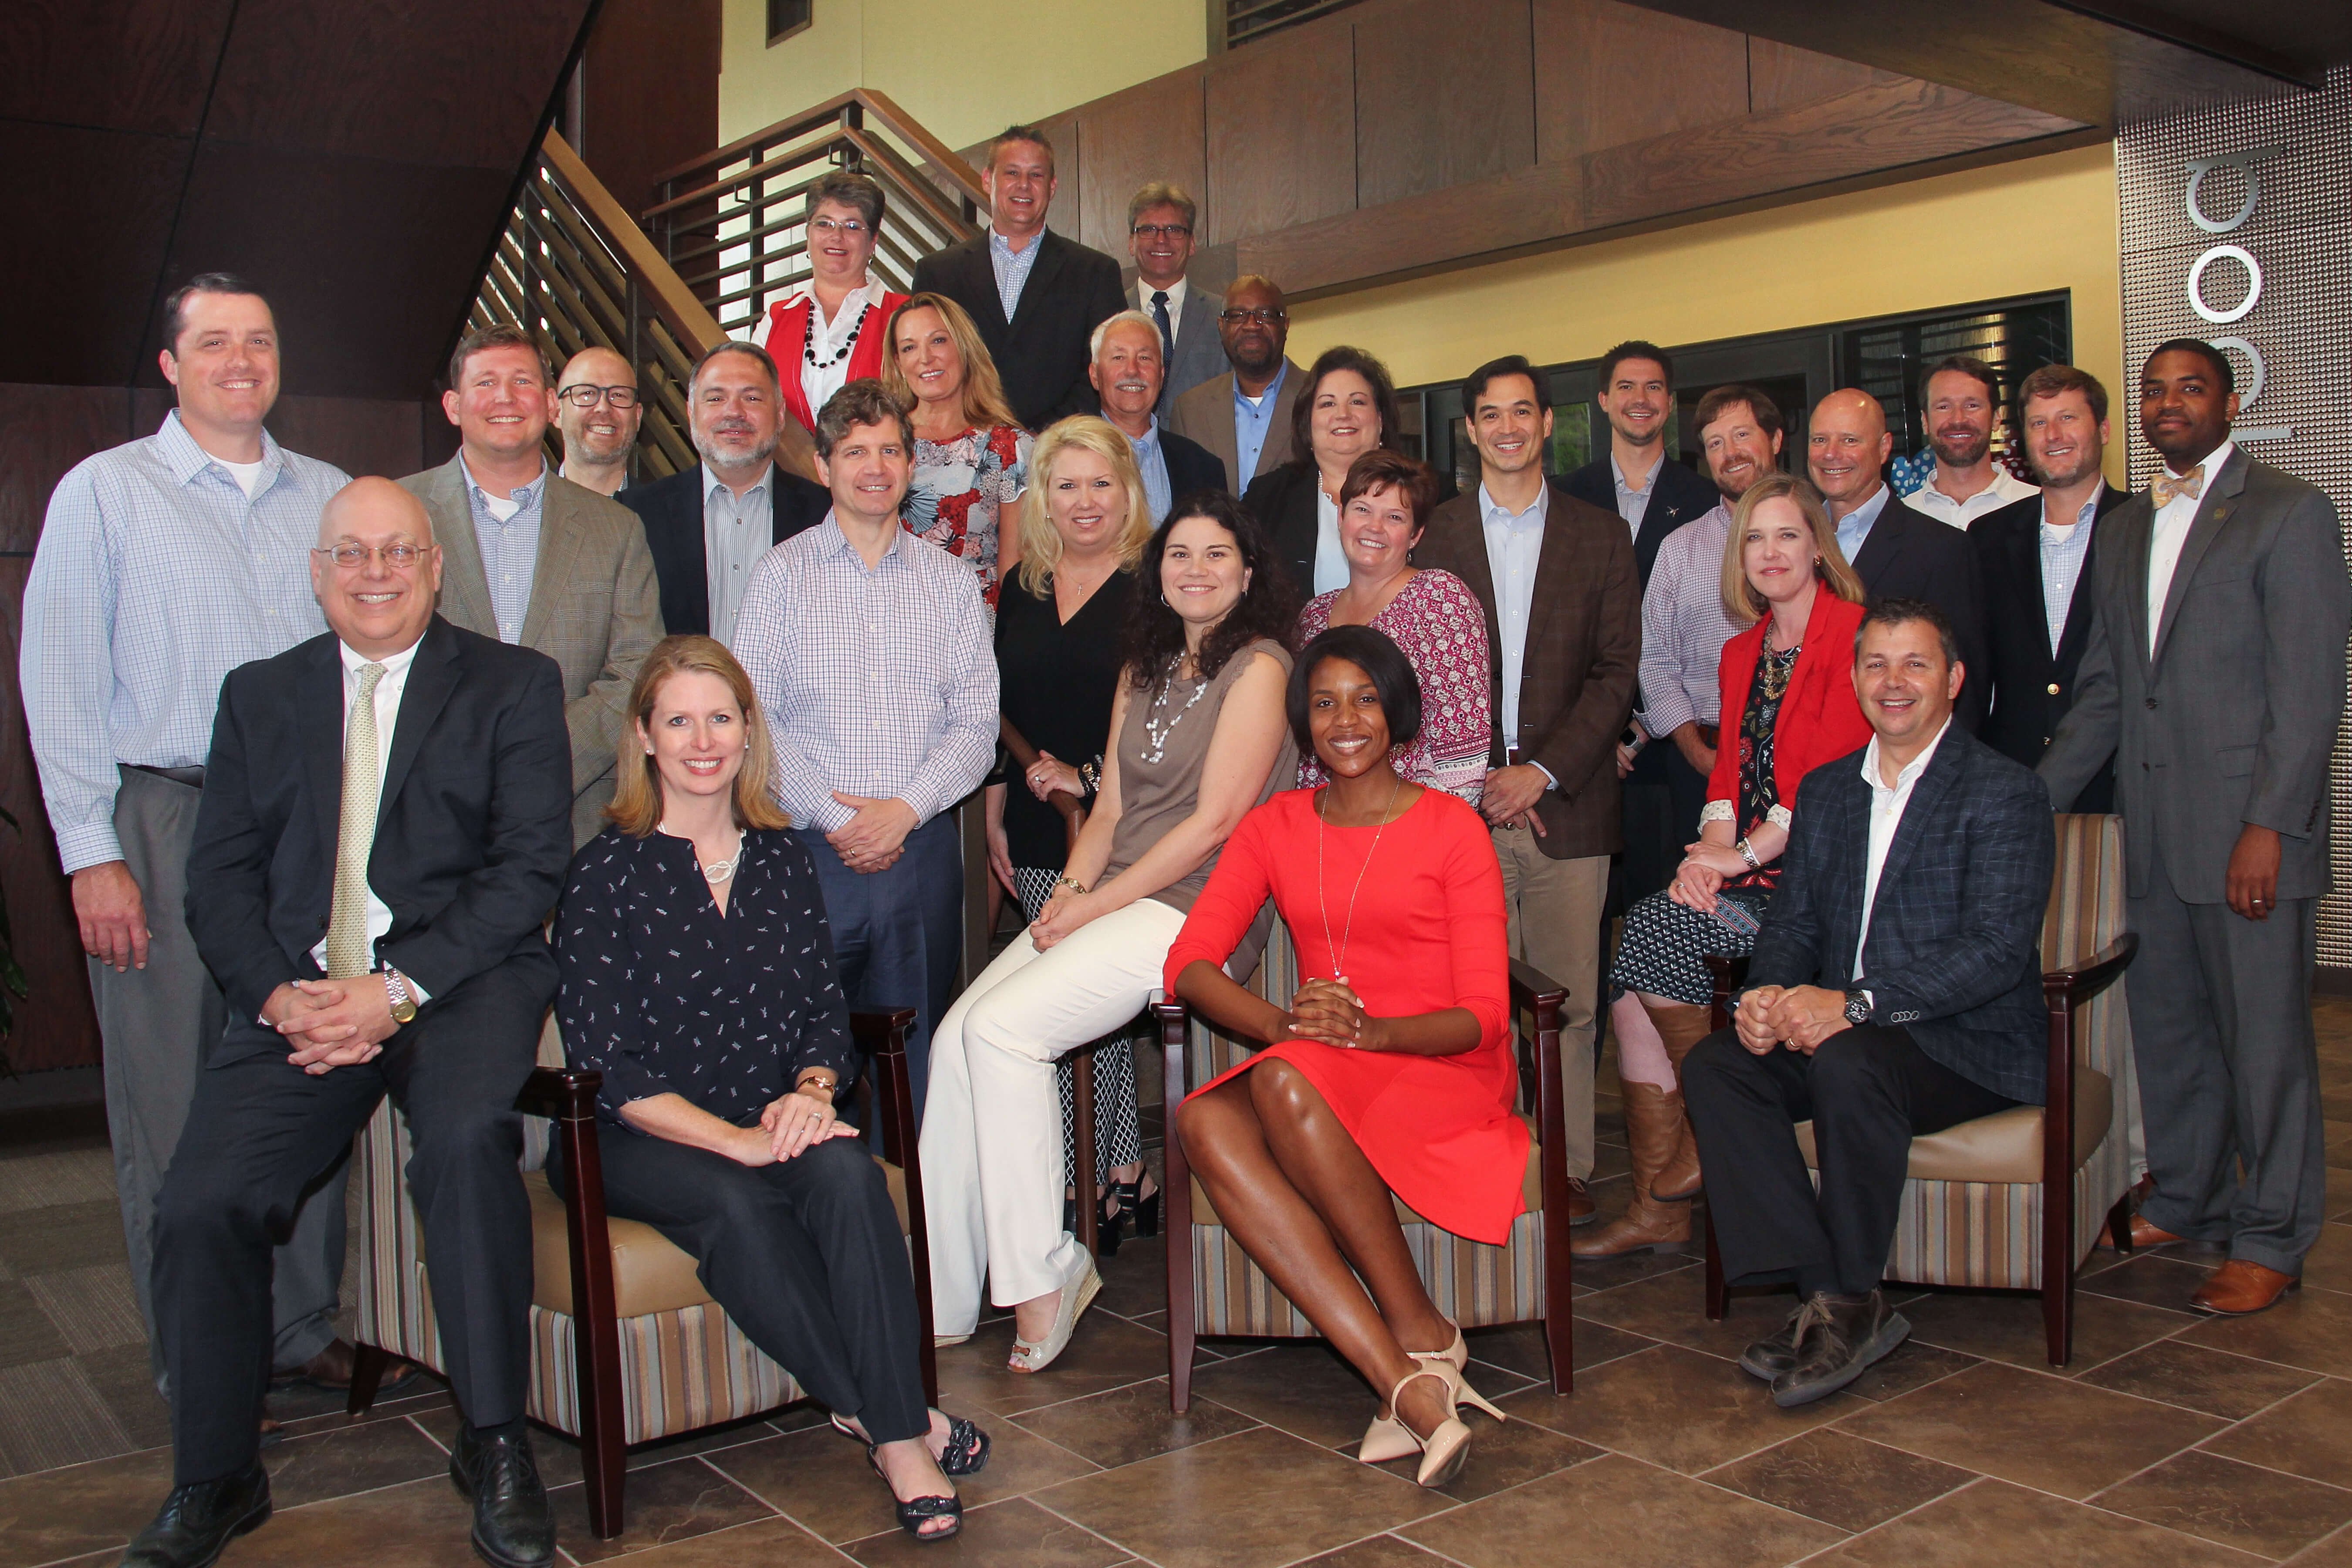 The Leadership Southeast Georgia Class of 2017